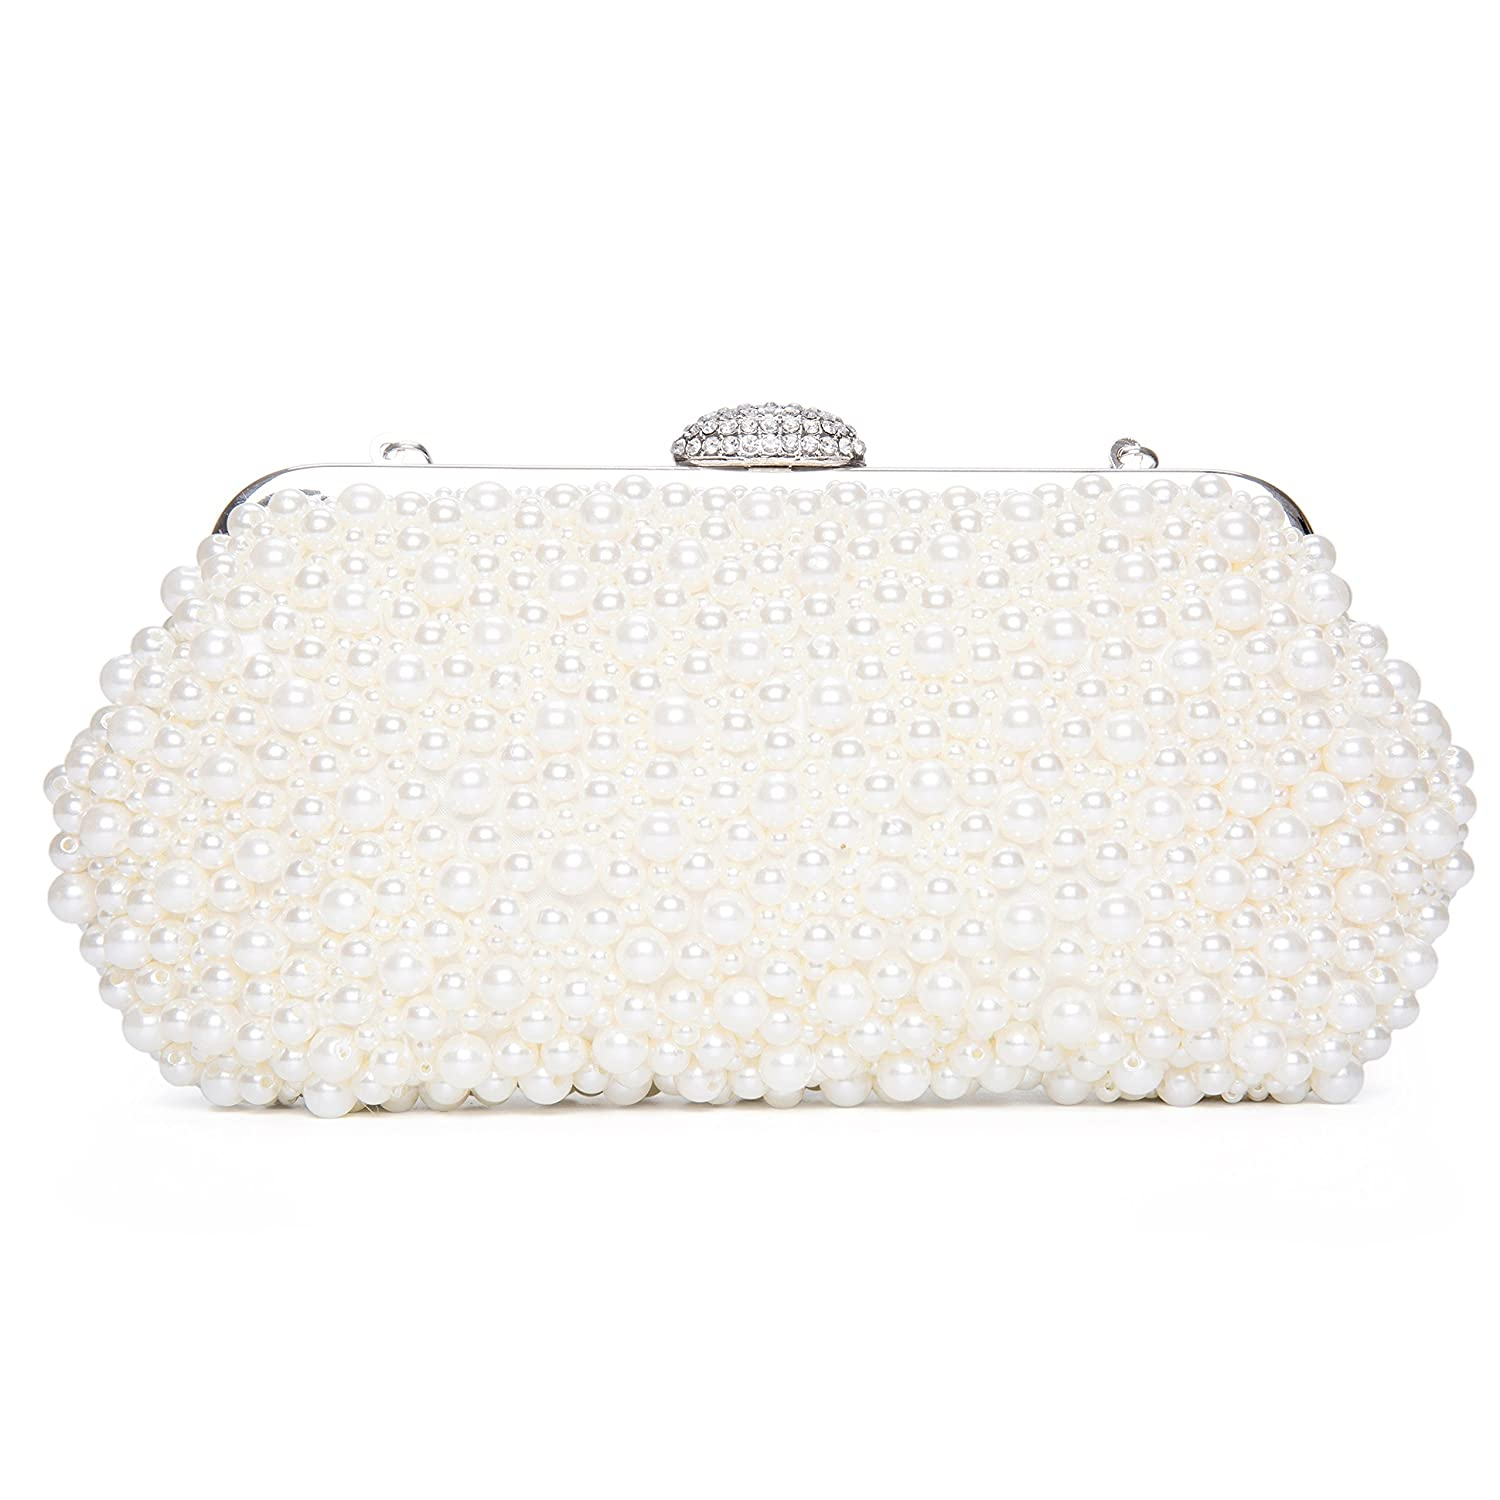 92243fb4e1 Buy Kisschic Women Faux Pearl Bead Rhinestone Evening Clutch Clutches Bag  Handbag Pearl Evening Bags (Beige) Online at Low Prices in India - Amazon.in